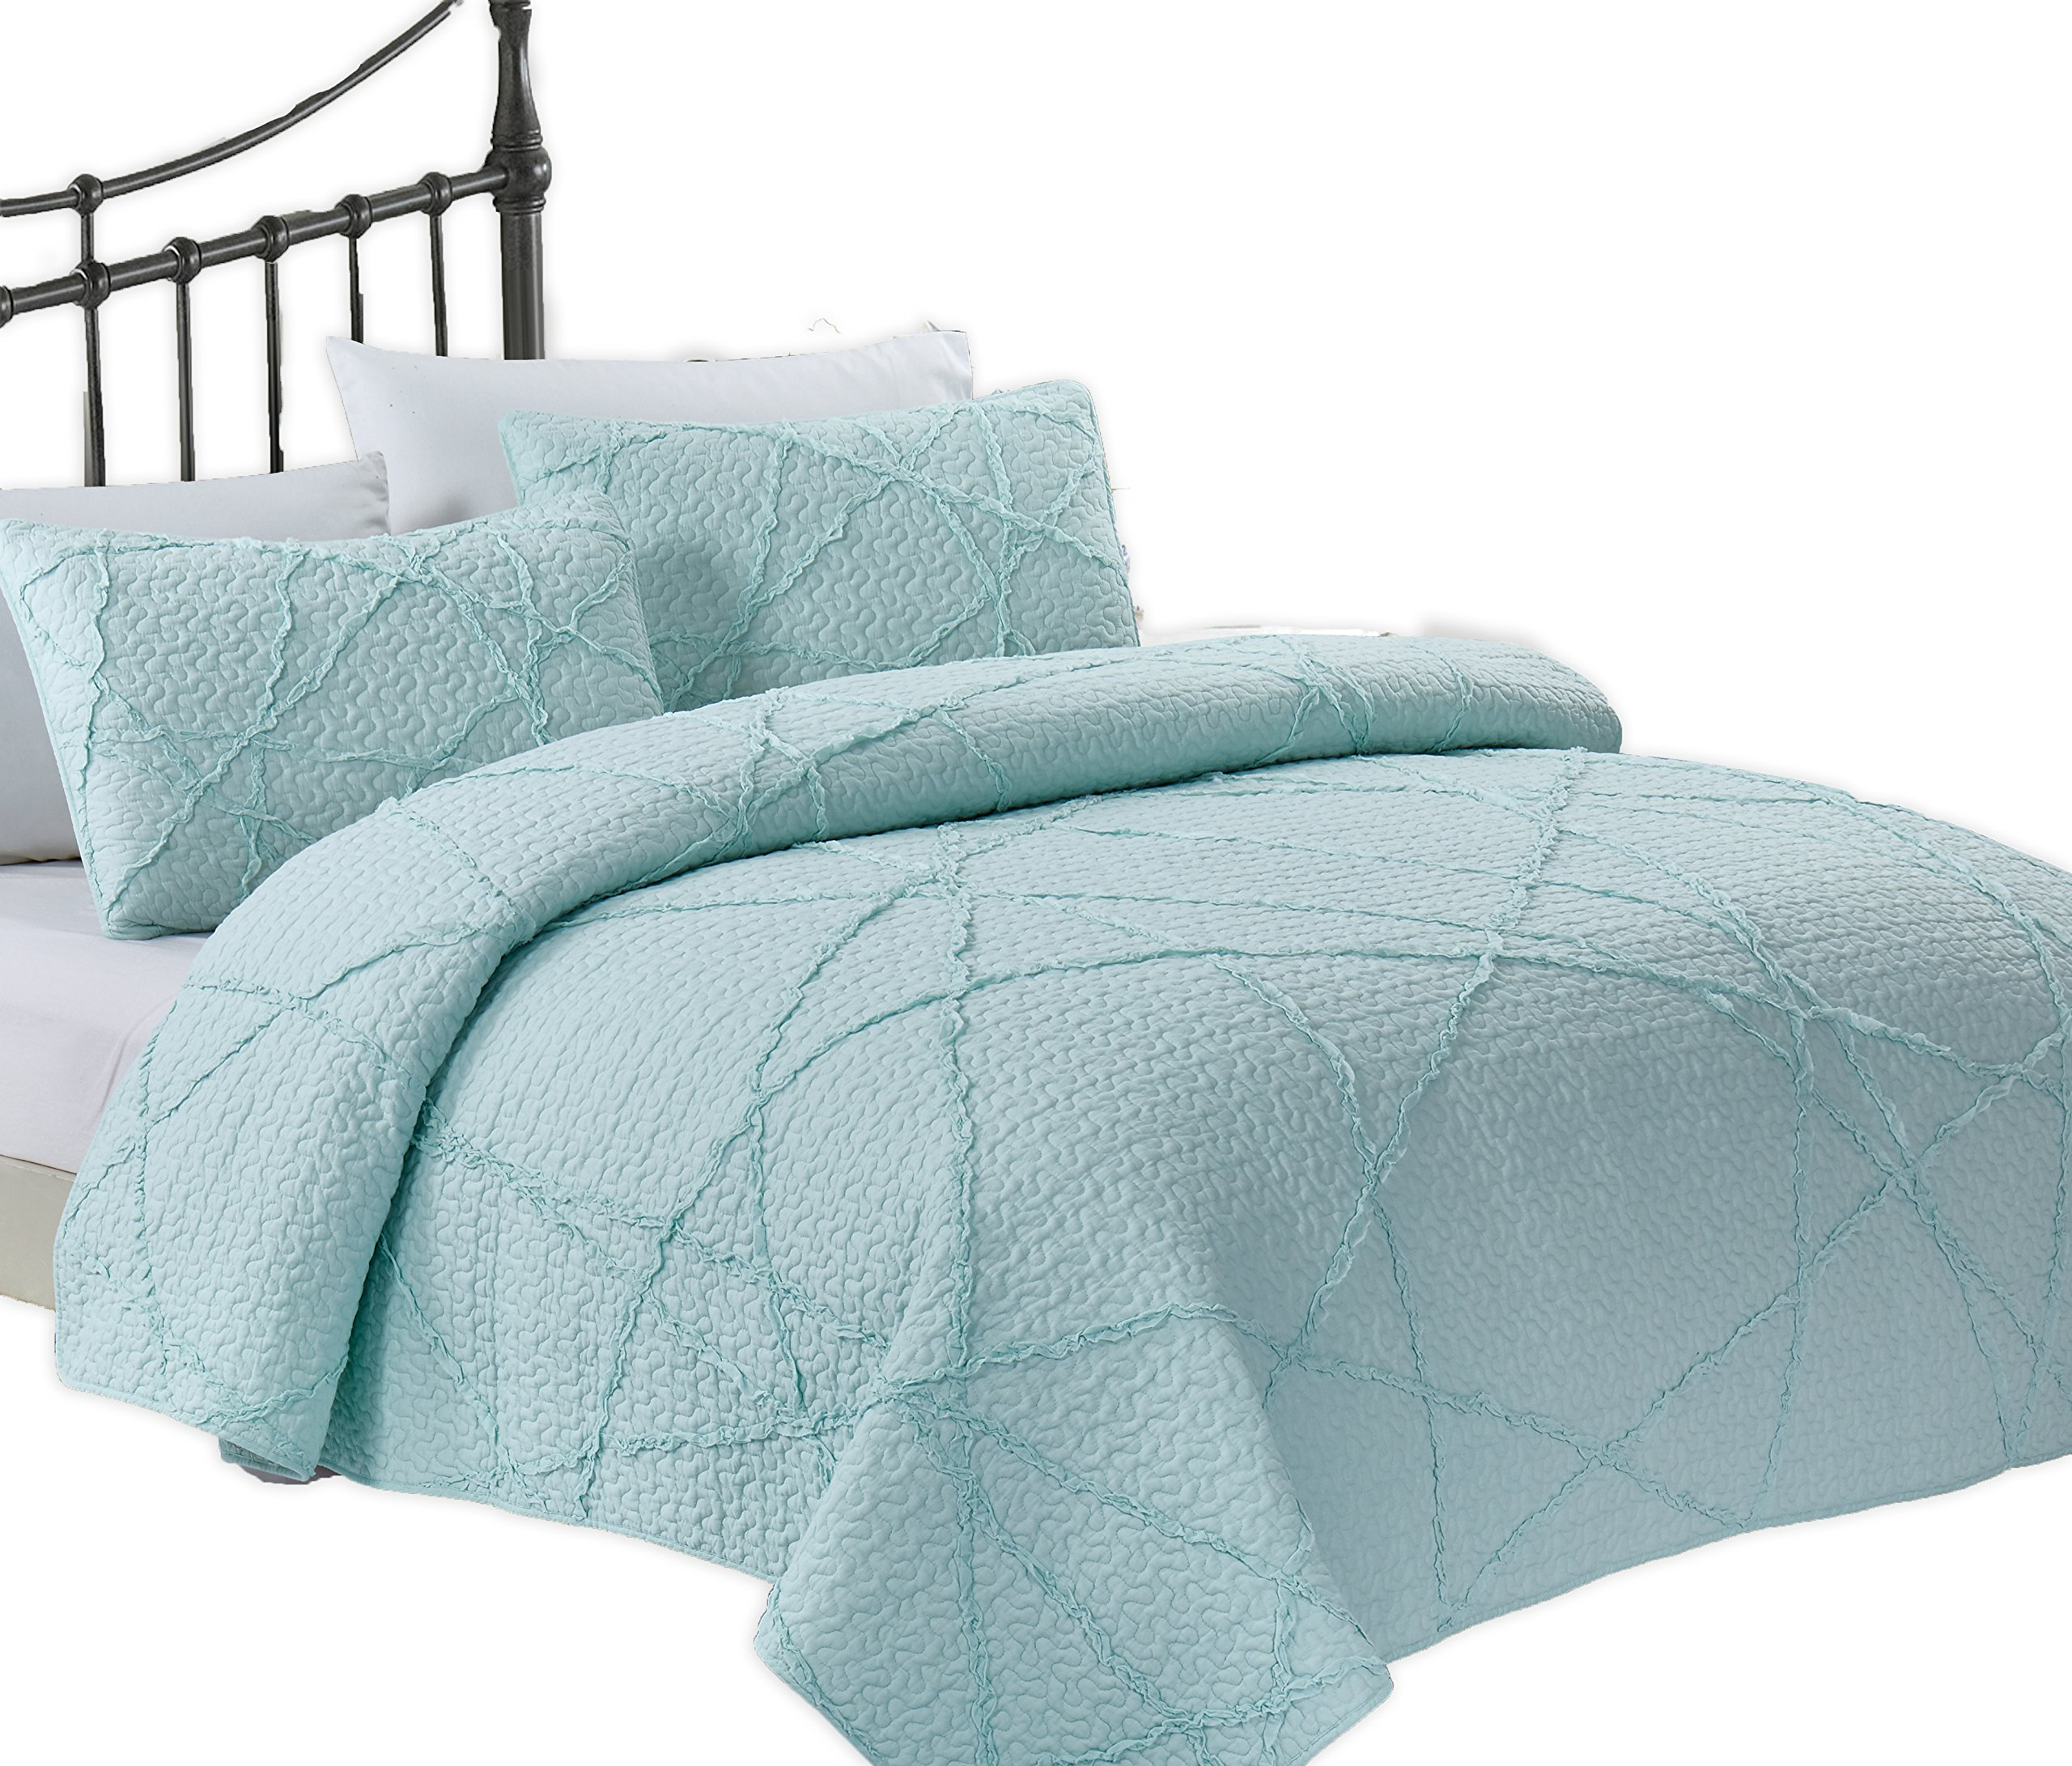 California Design Den Crazy Ruffled Breathable 100% Pure Cotton Luxury Quilt Sets, Full/Queen, Spa Blue, 3 Piece